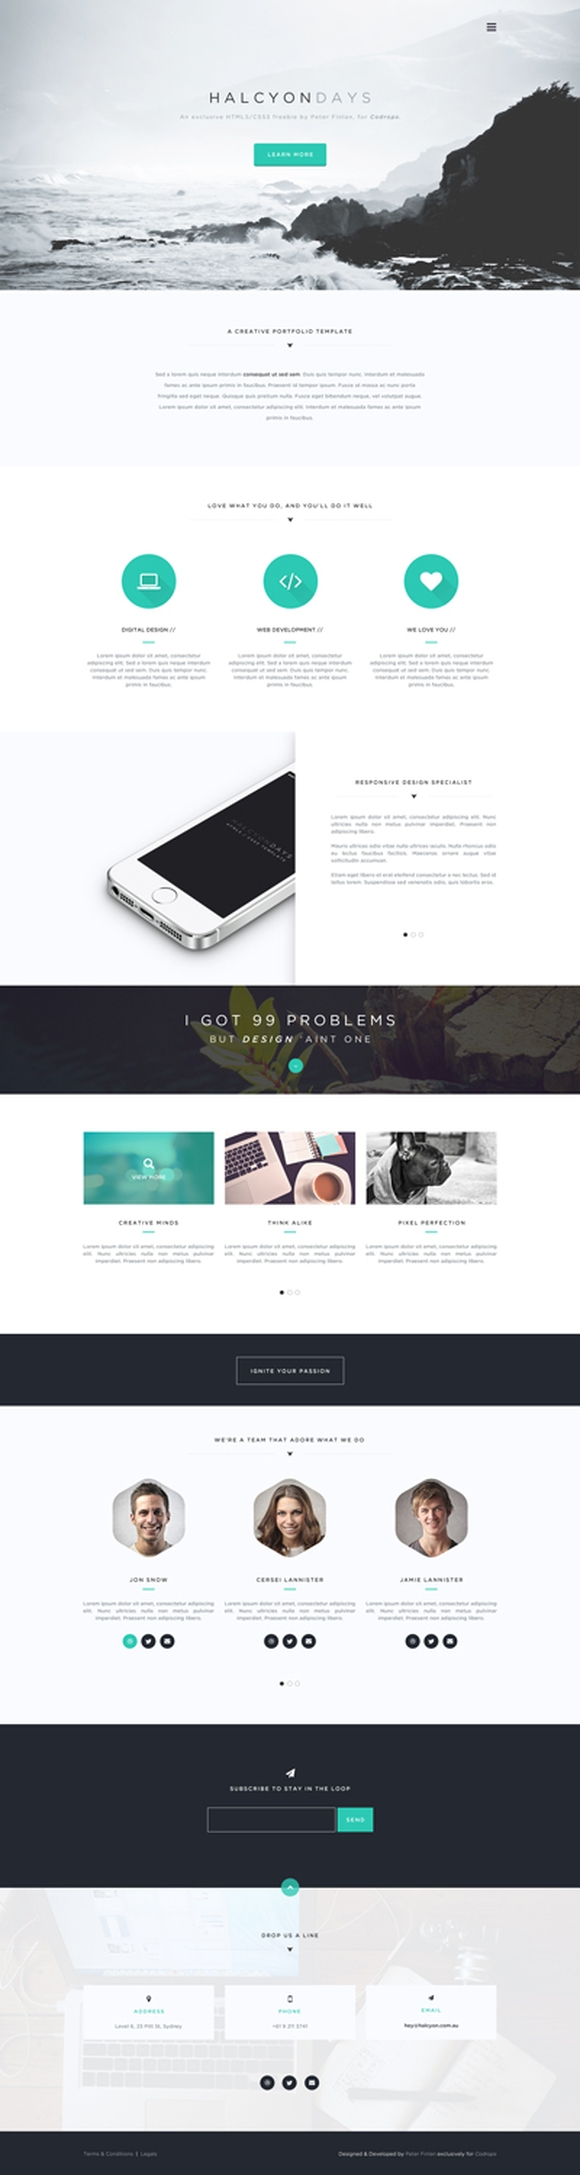 HALCYON DAYS PSD TEMPLATE